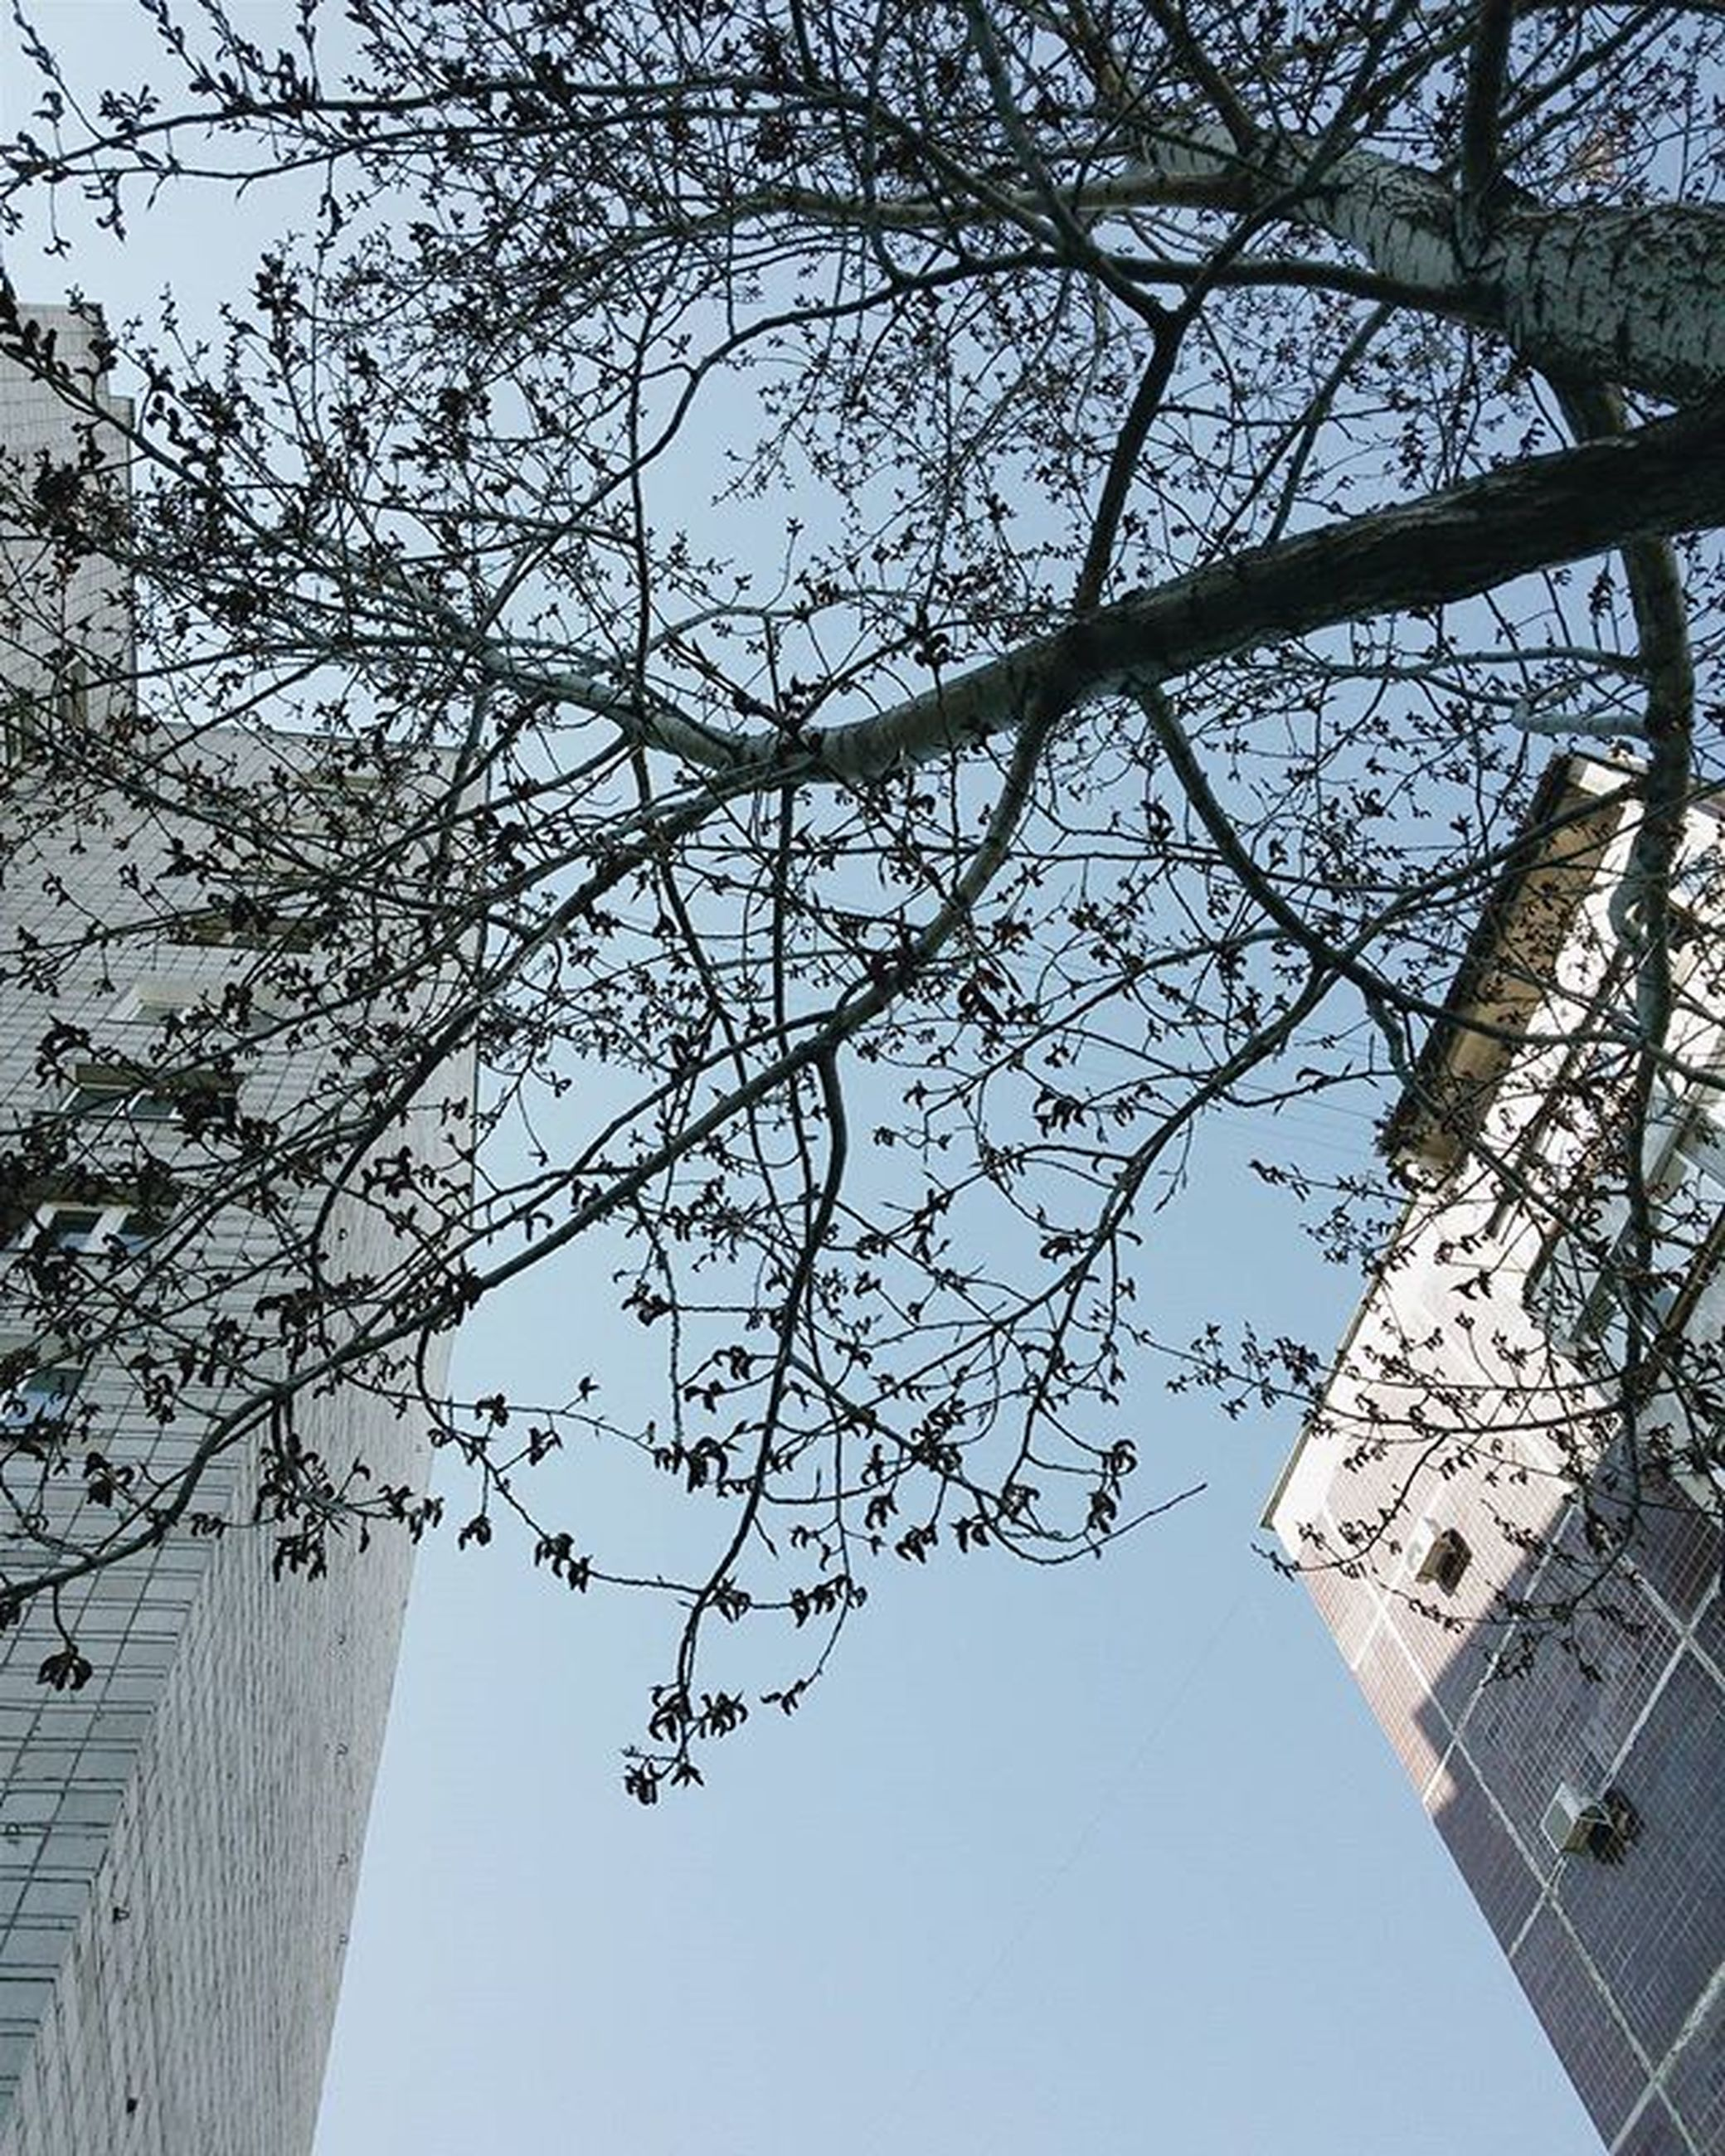 building exterior, architecture, built structure, low angle view, tree, branch, city, clear sky, bare tree, sky, building, tower, tall - high, day, outdoors, no people, sunlight, church, skyscraper, residential building